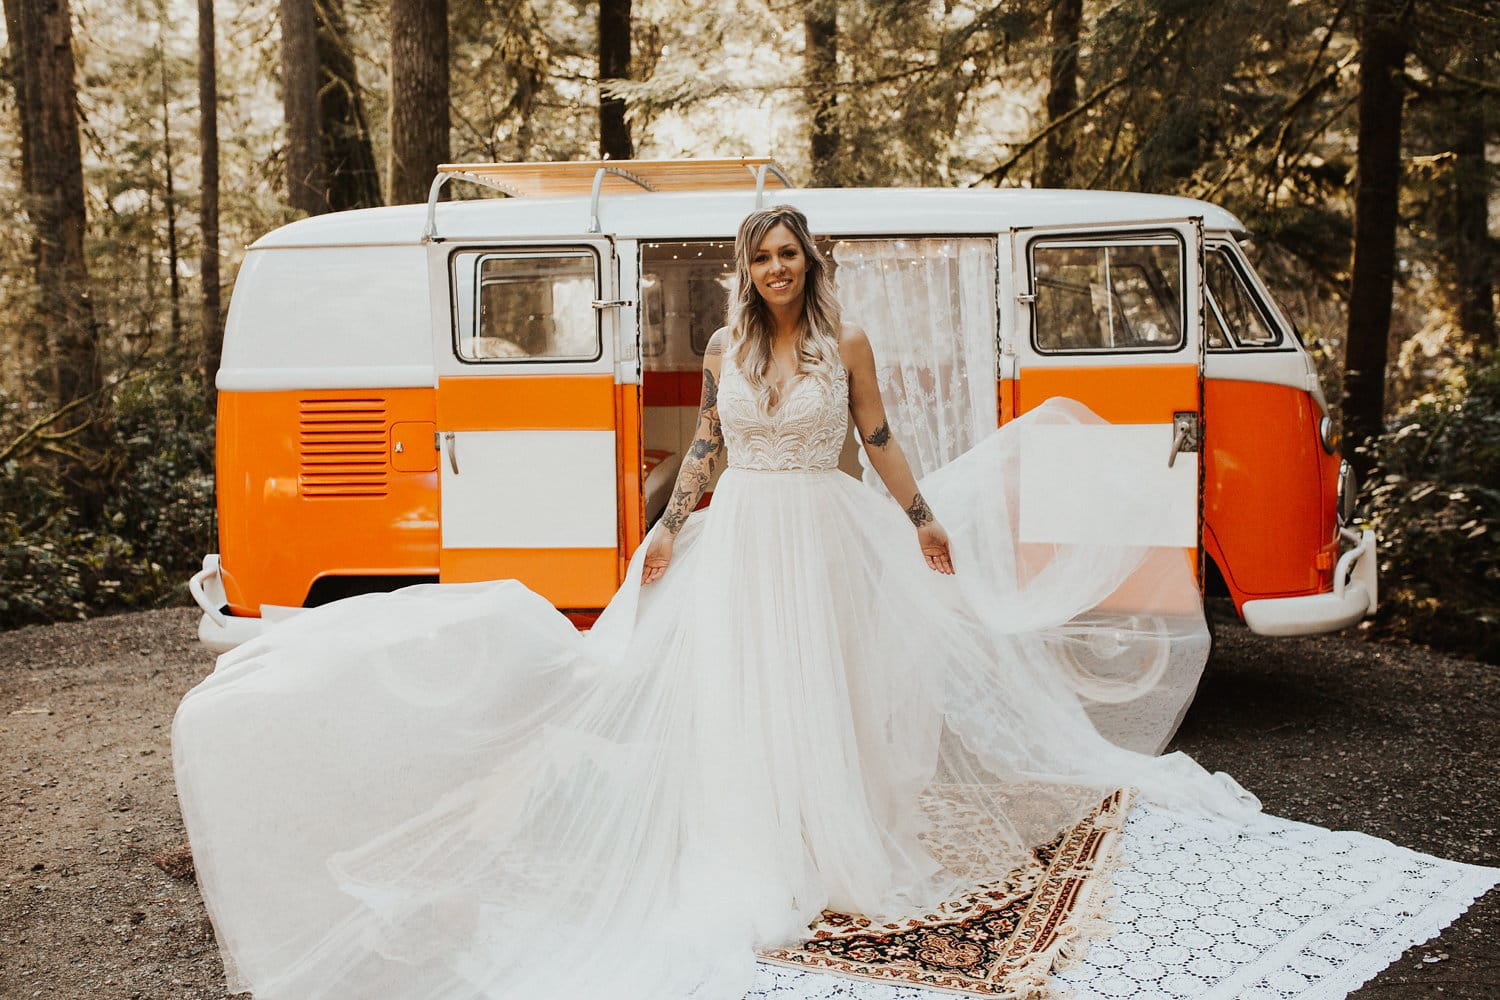 Rock 'N' Roll Styled Shoot Featuring Beaded Lace Gown and Camper Van. Charlene wedding dress by Maggie Sottero.